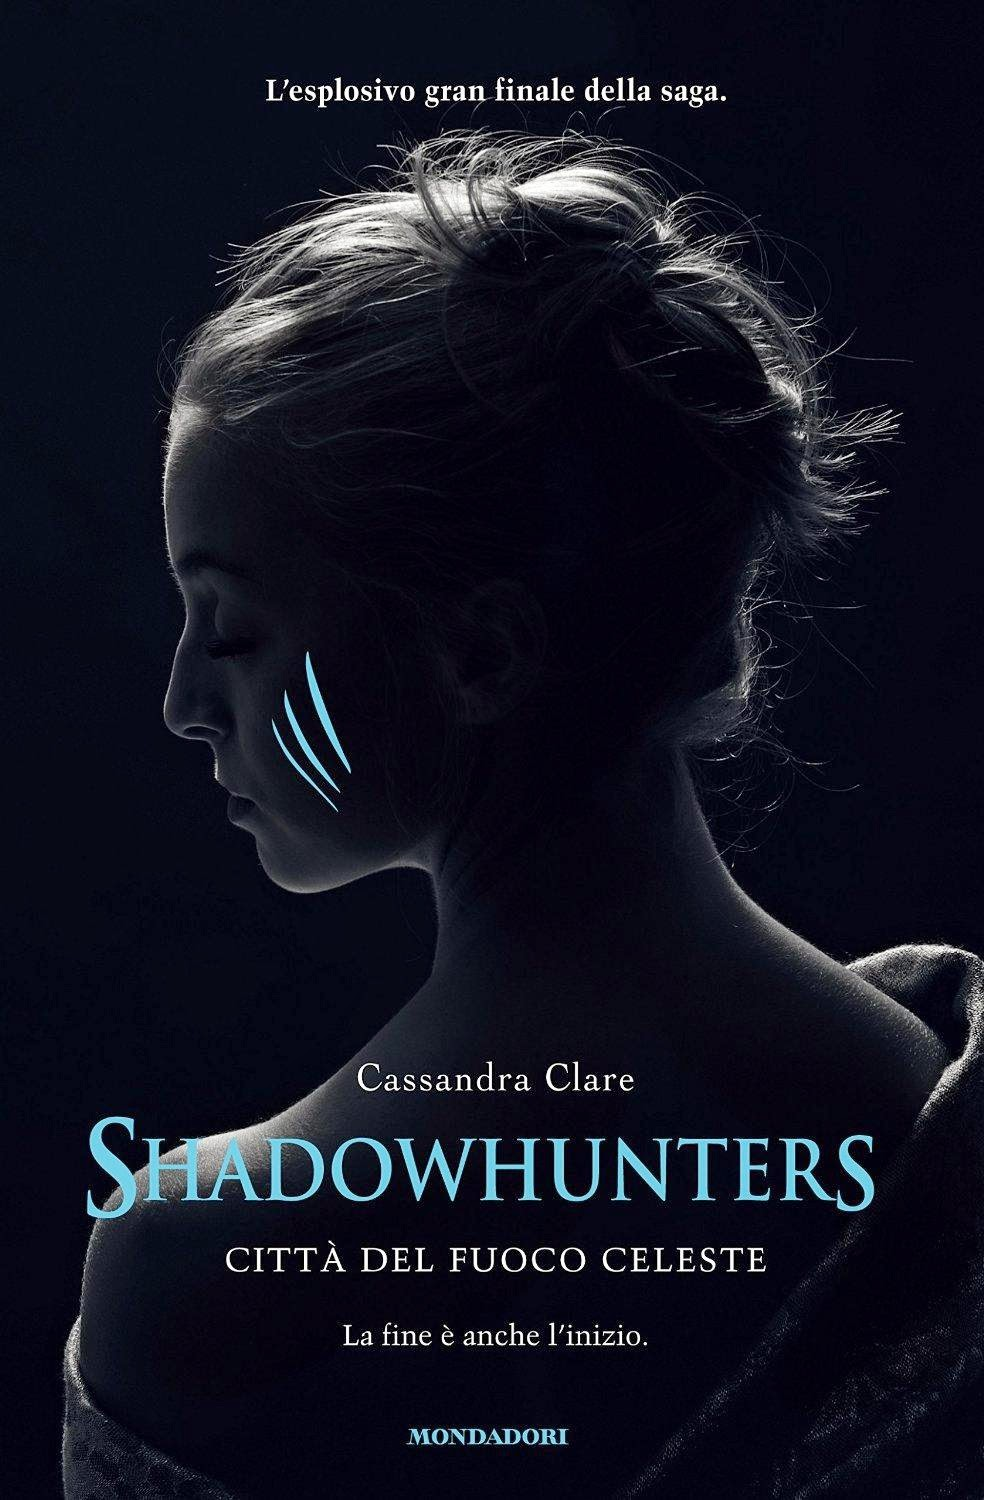 http://www.amazon.it/Shadowhunters-Citt%C3%A0-del-fuoco-celeste/dp/8804641290/ref=sr_1_1?s=books&ie=UTF8&qid=1409387753&sr=1-1&keywords=citt%C3%A0+del+fuoco+celeste